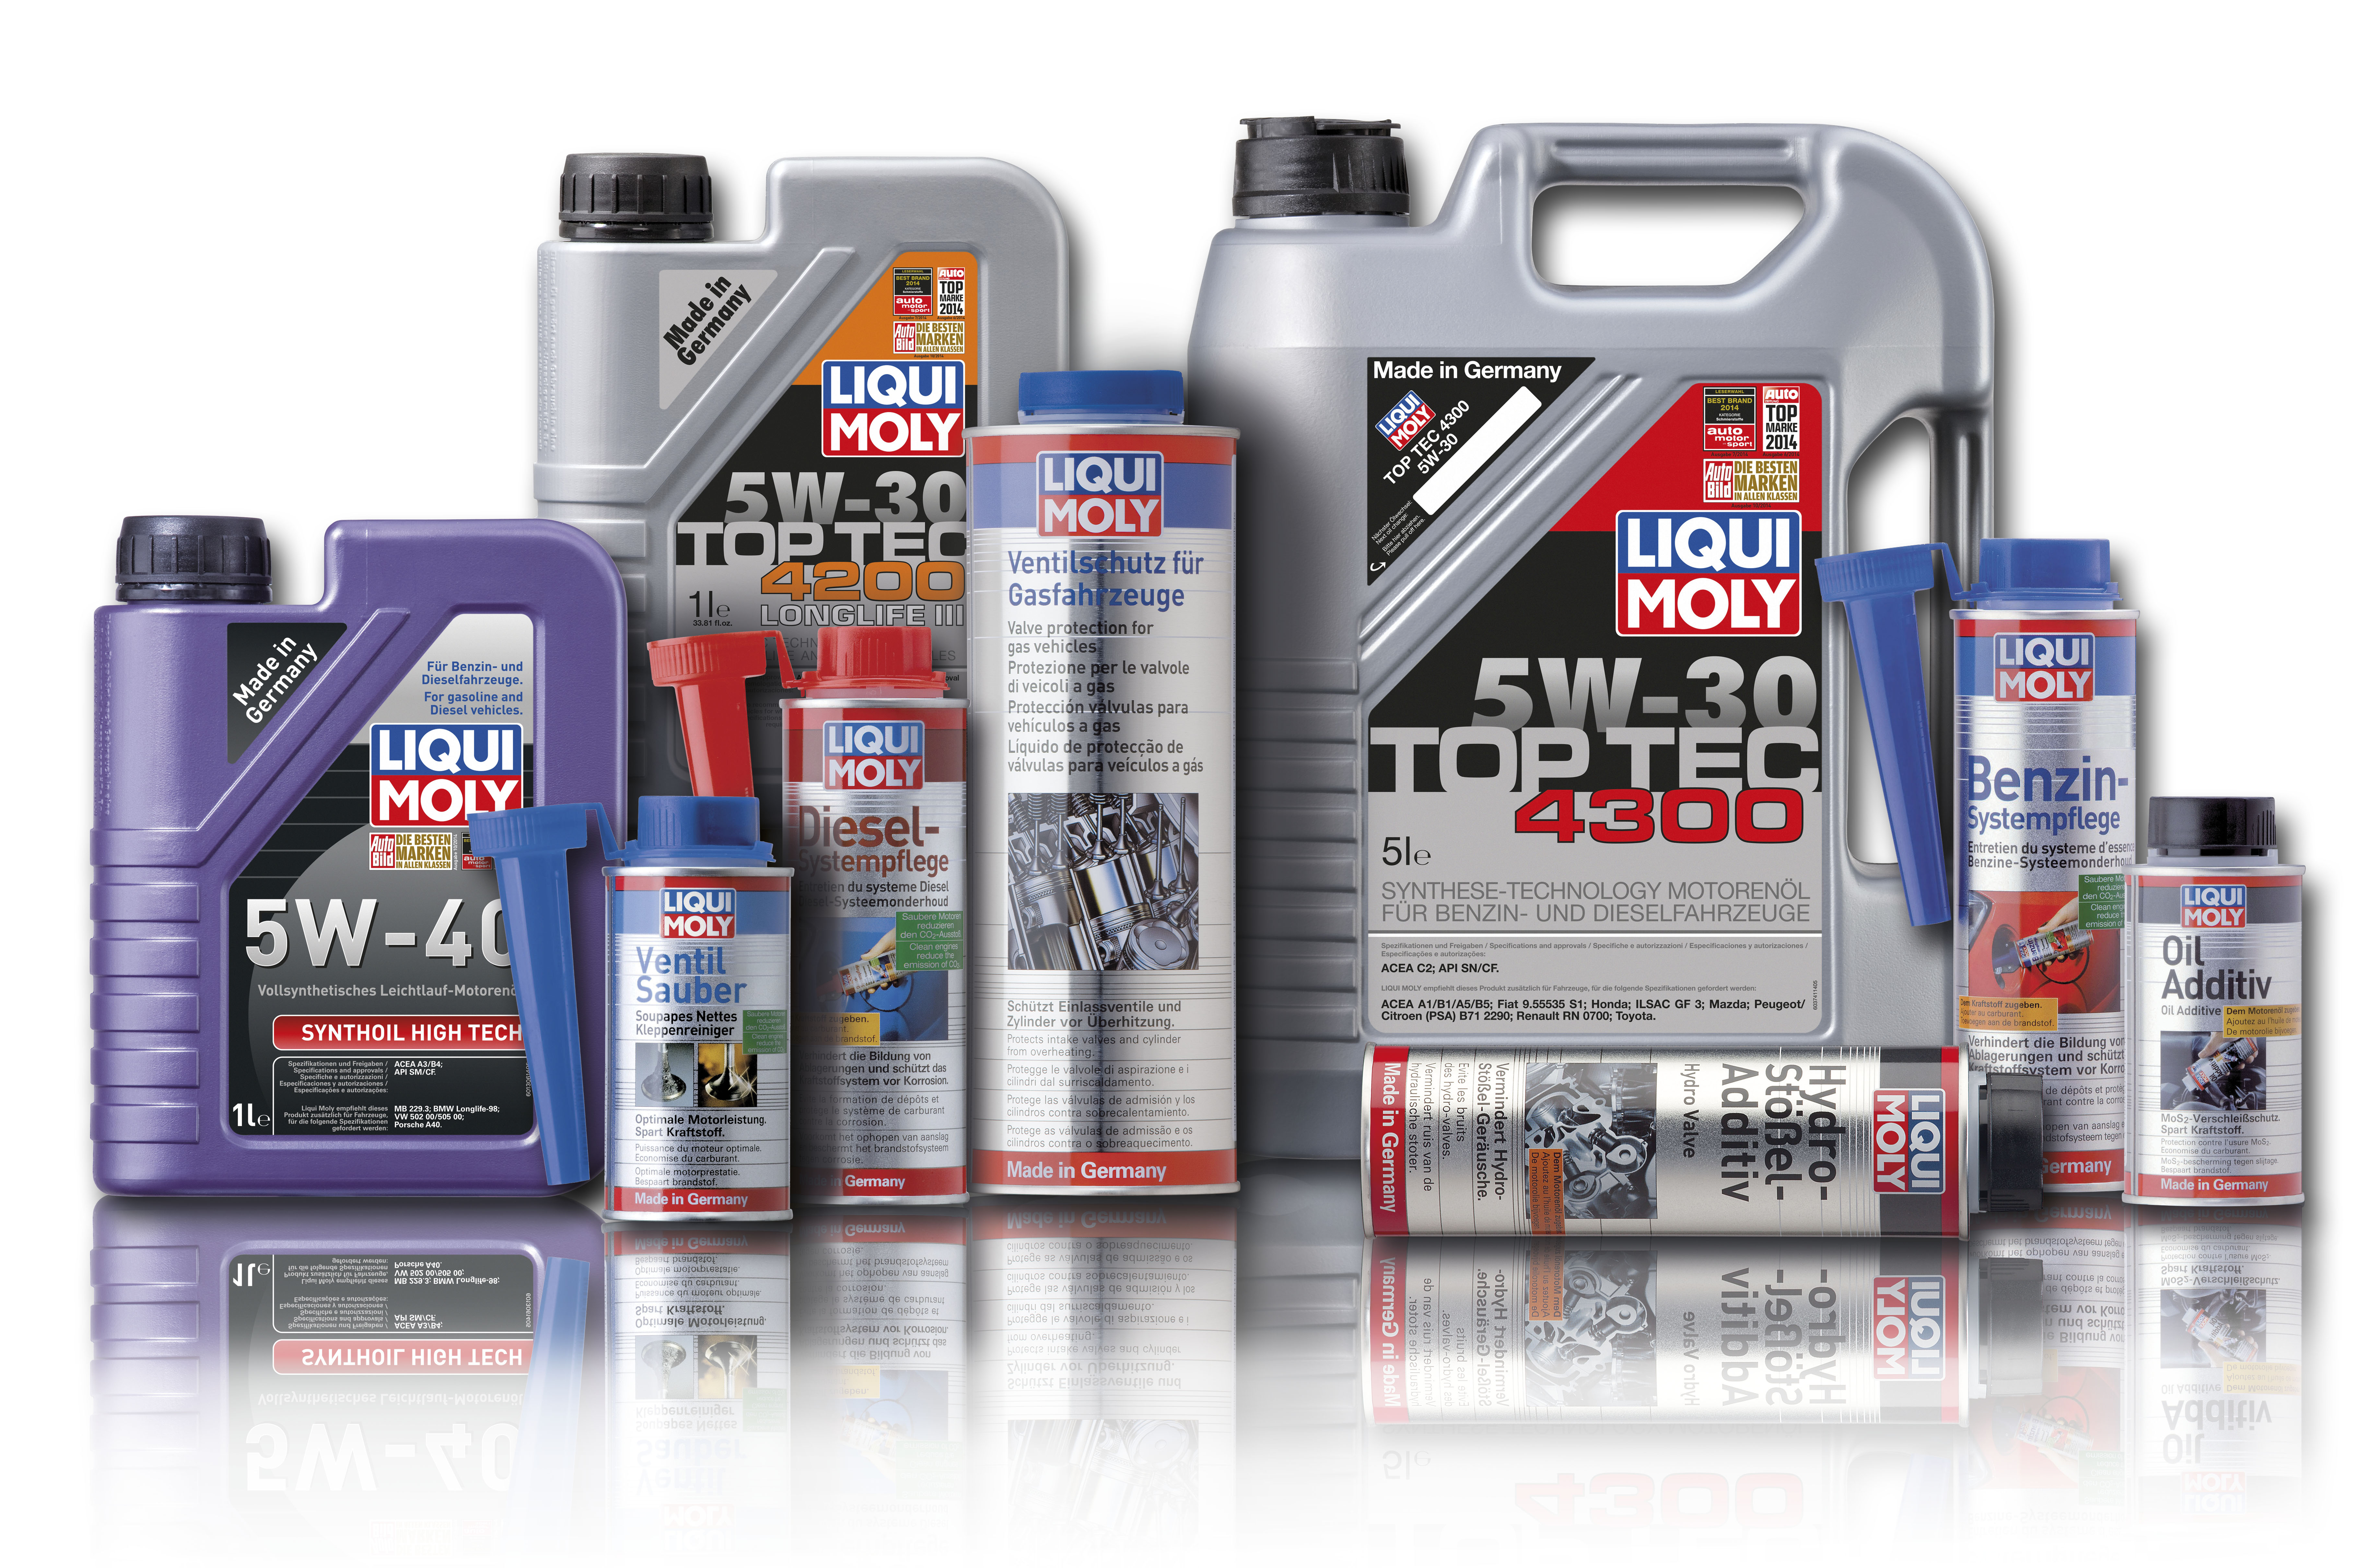 Pictures Liqui Moly nude photos 2019